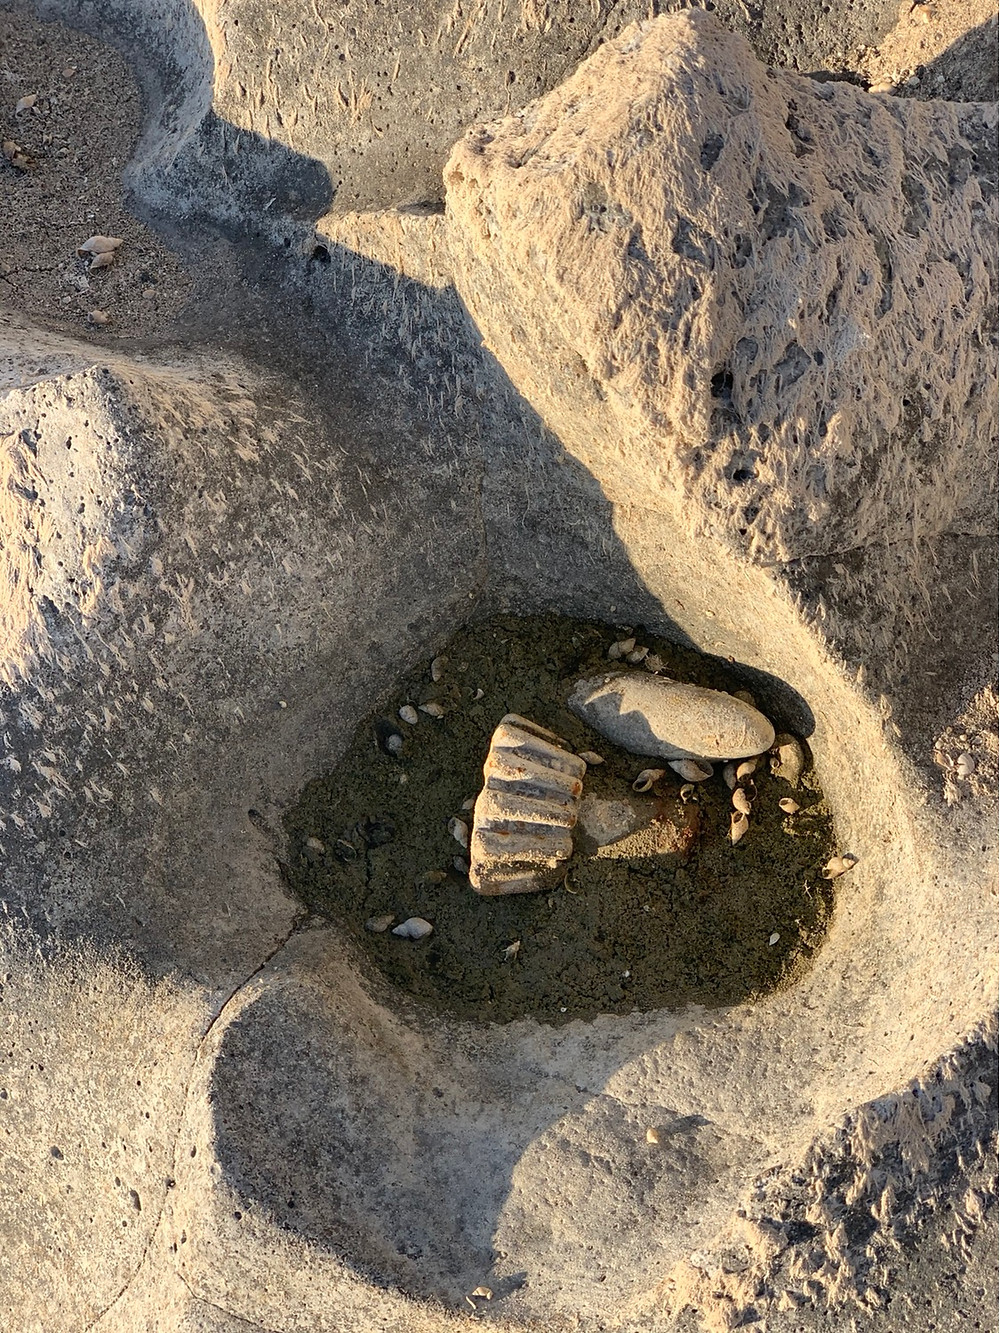 Out on my walk the other day, I found this in the river bed. A rock and an old gear piece -- together they swirl away at the basalt to form something new.  I thought it was a good metaphor for what we're dealing with in the world today.